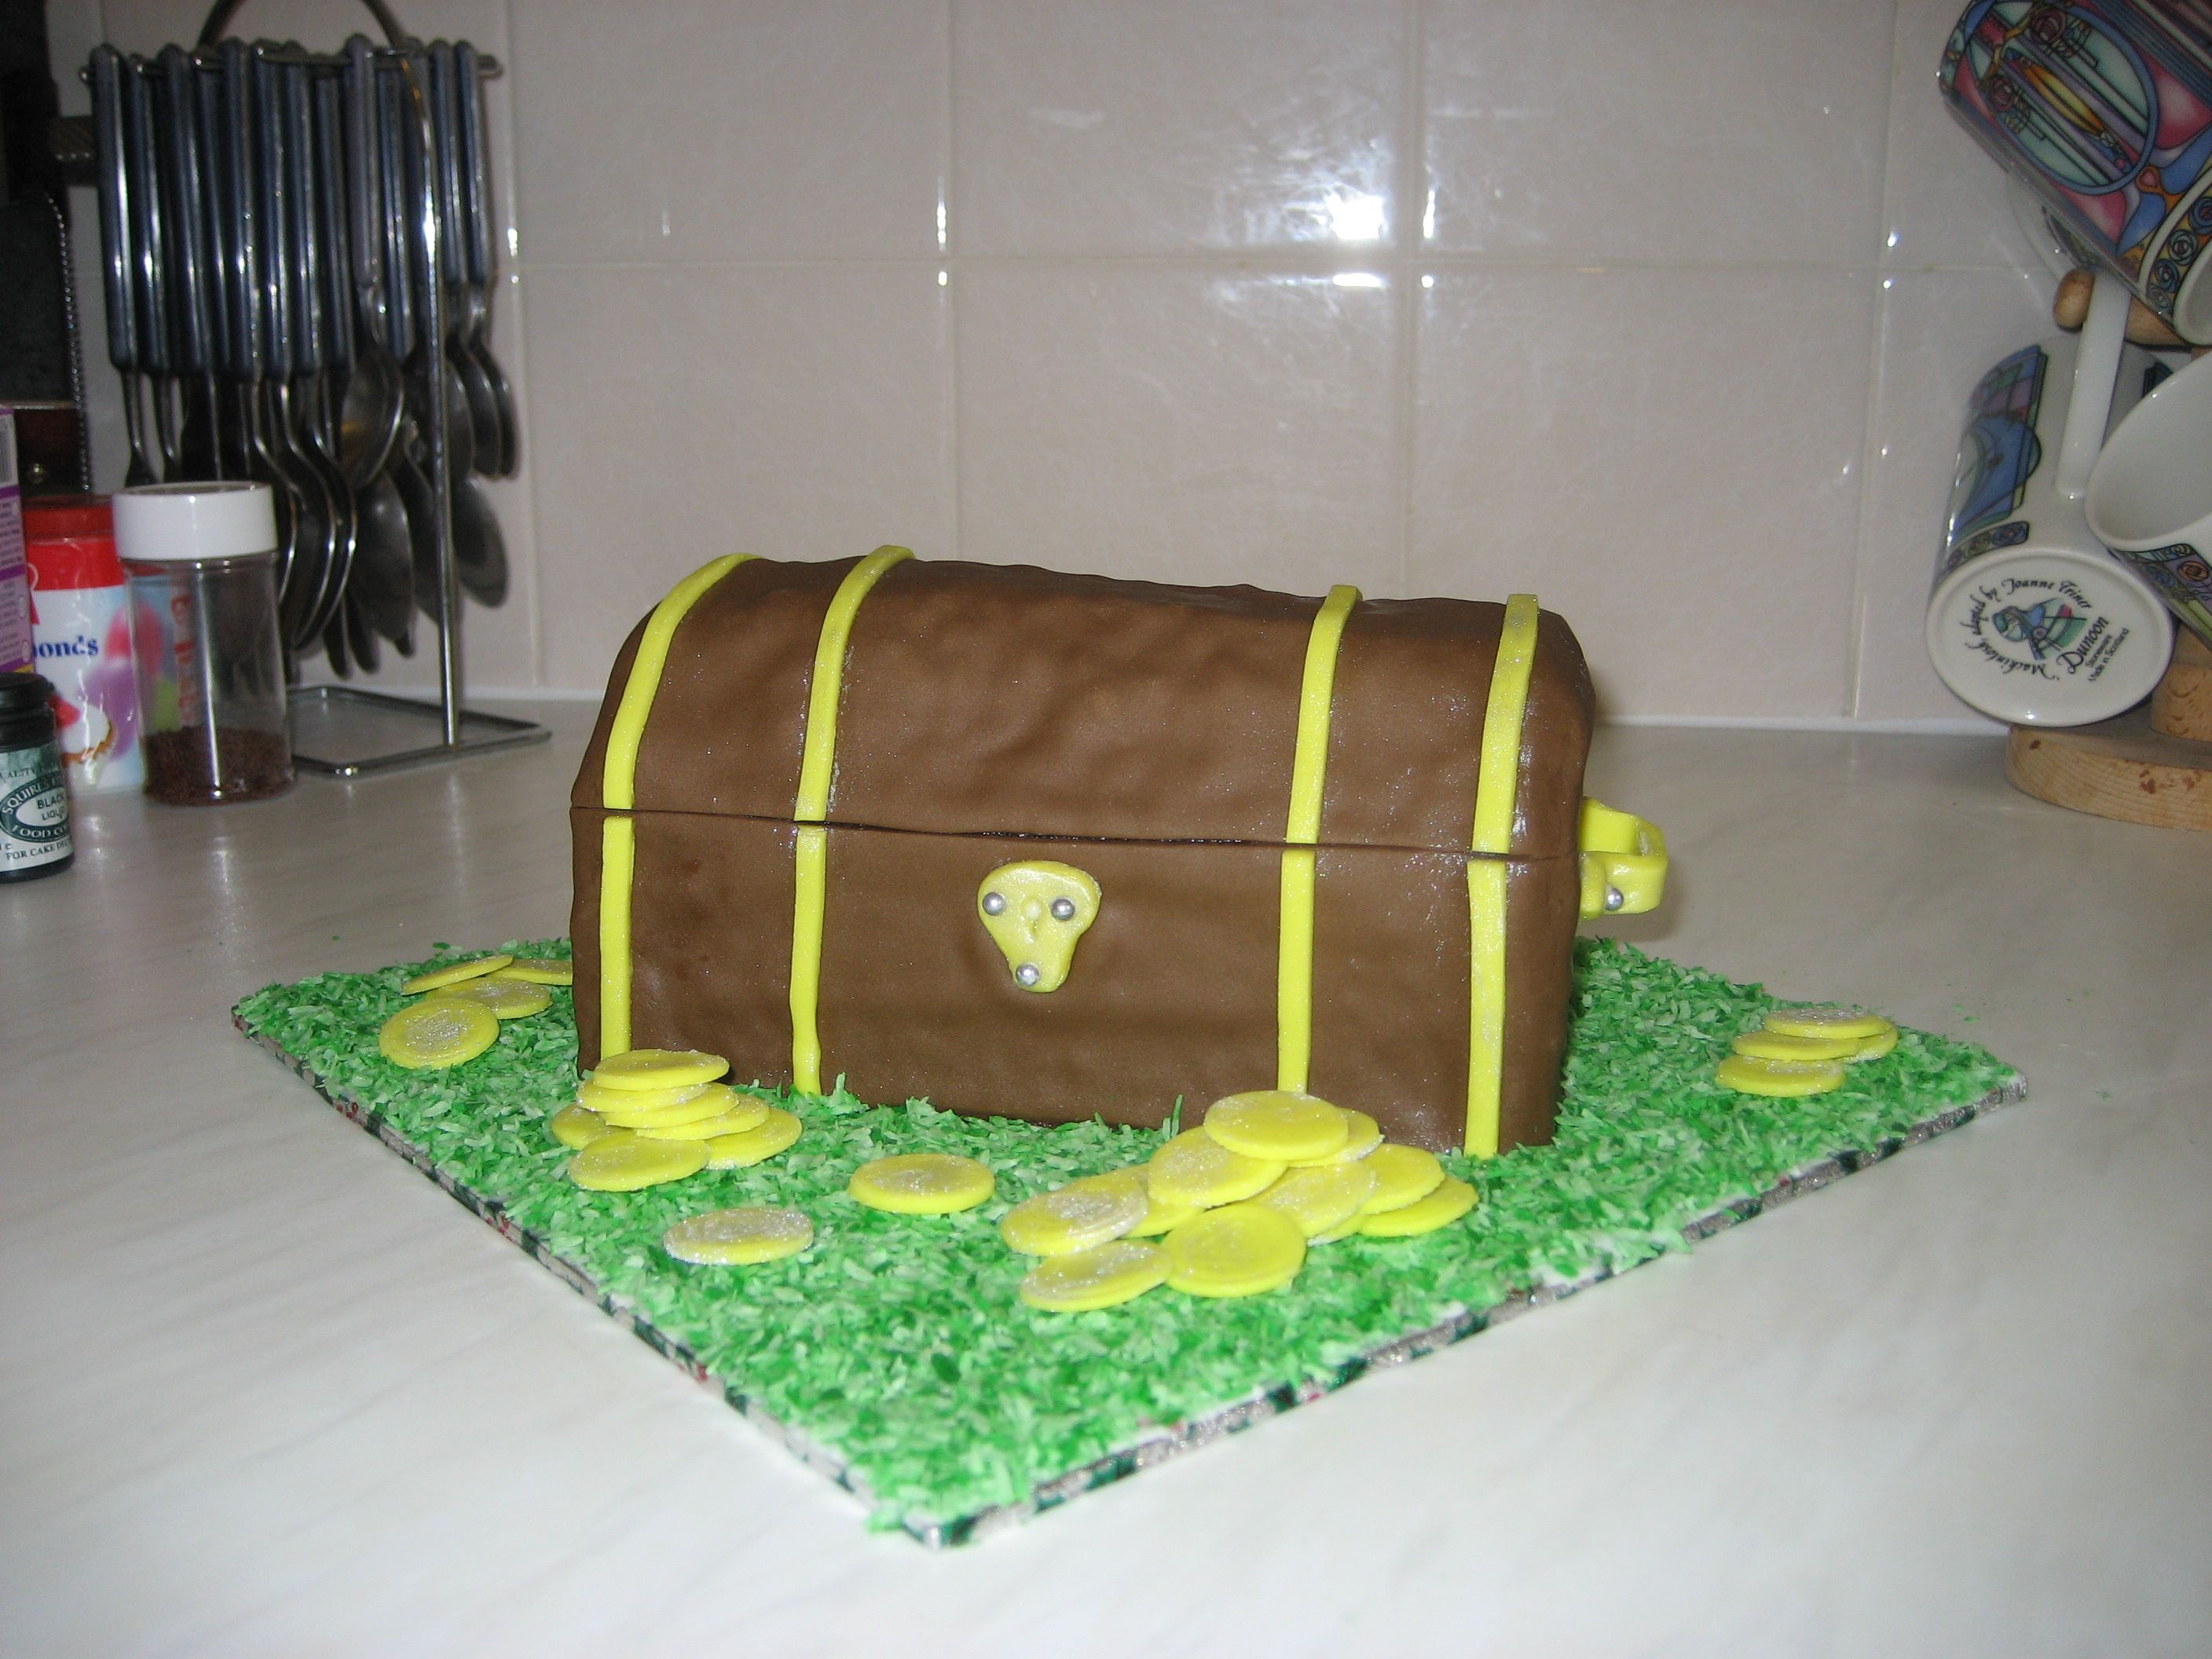 Pirate Treasure Chest Cake (Avec Images) serapportantà Comment Fabriquer Un Coffre Au Trésor